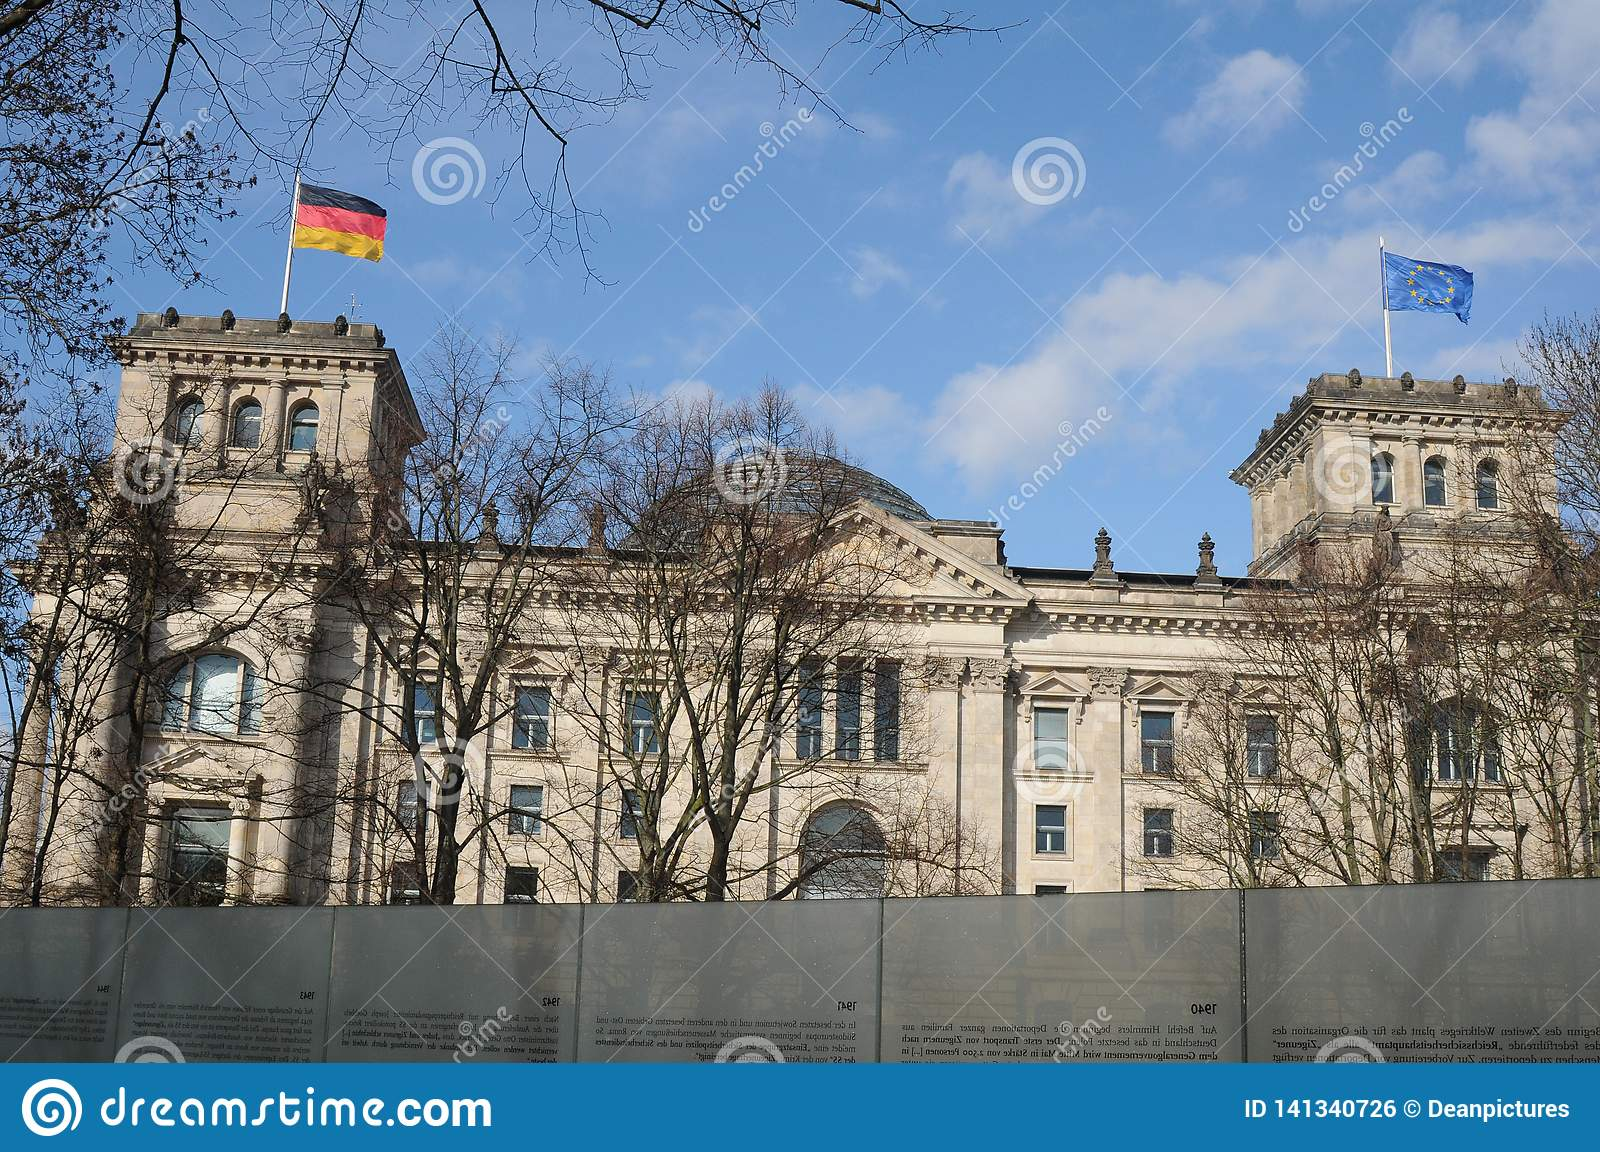 GERMAN PARLIAMENT BUILDING REICHTAG AND BUNDESTAG